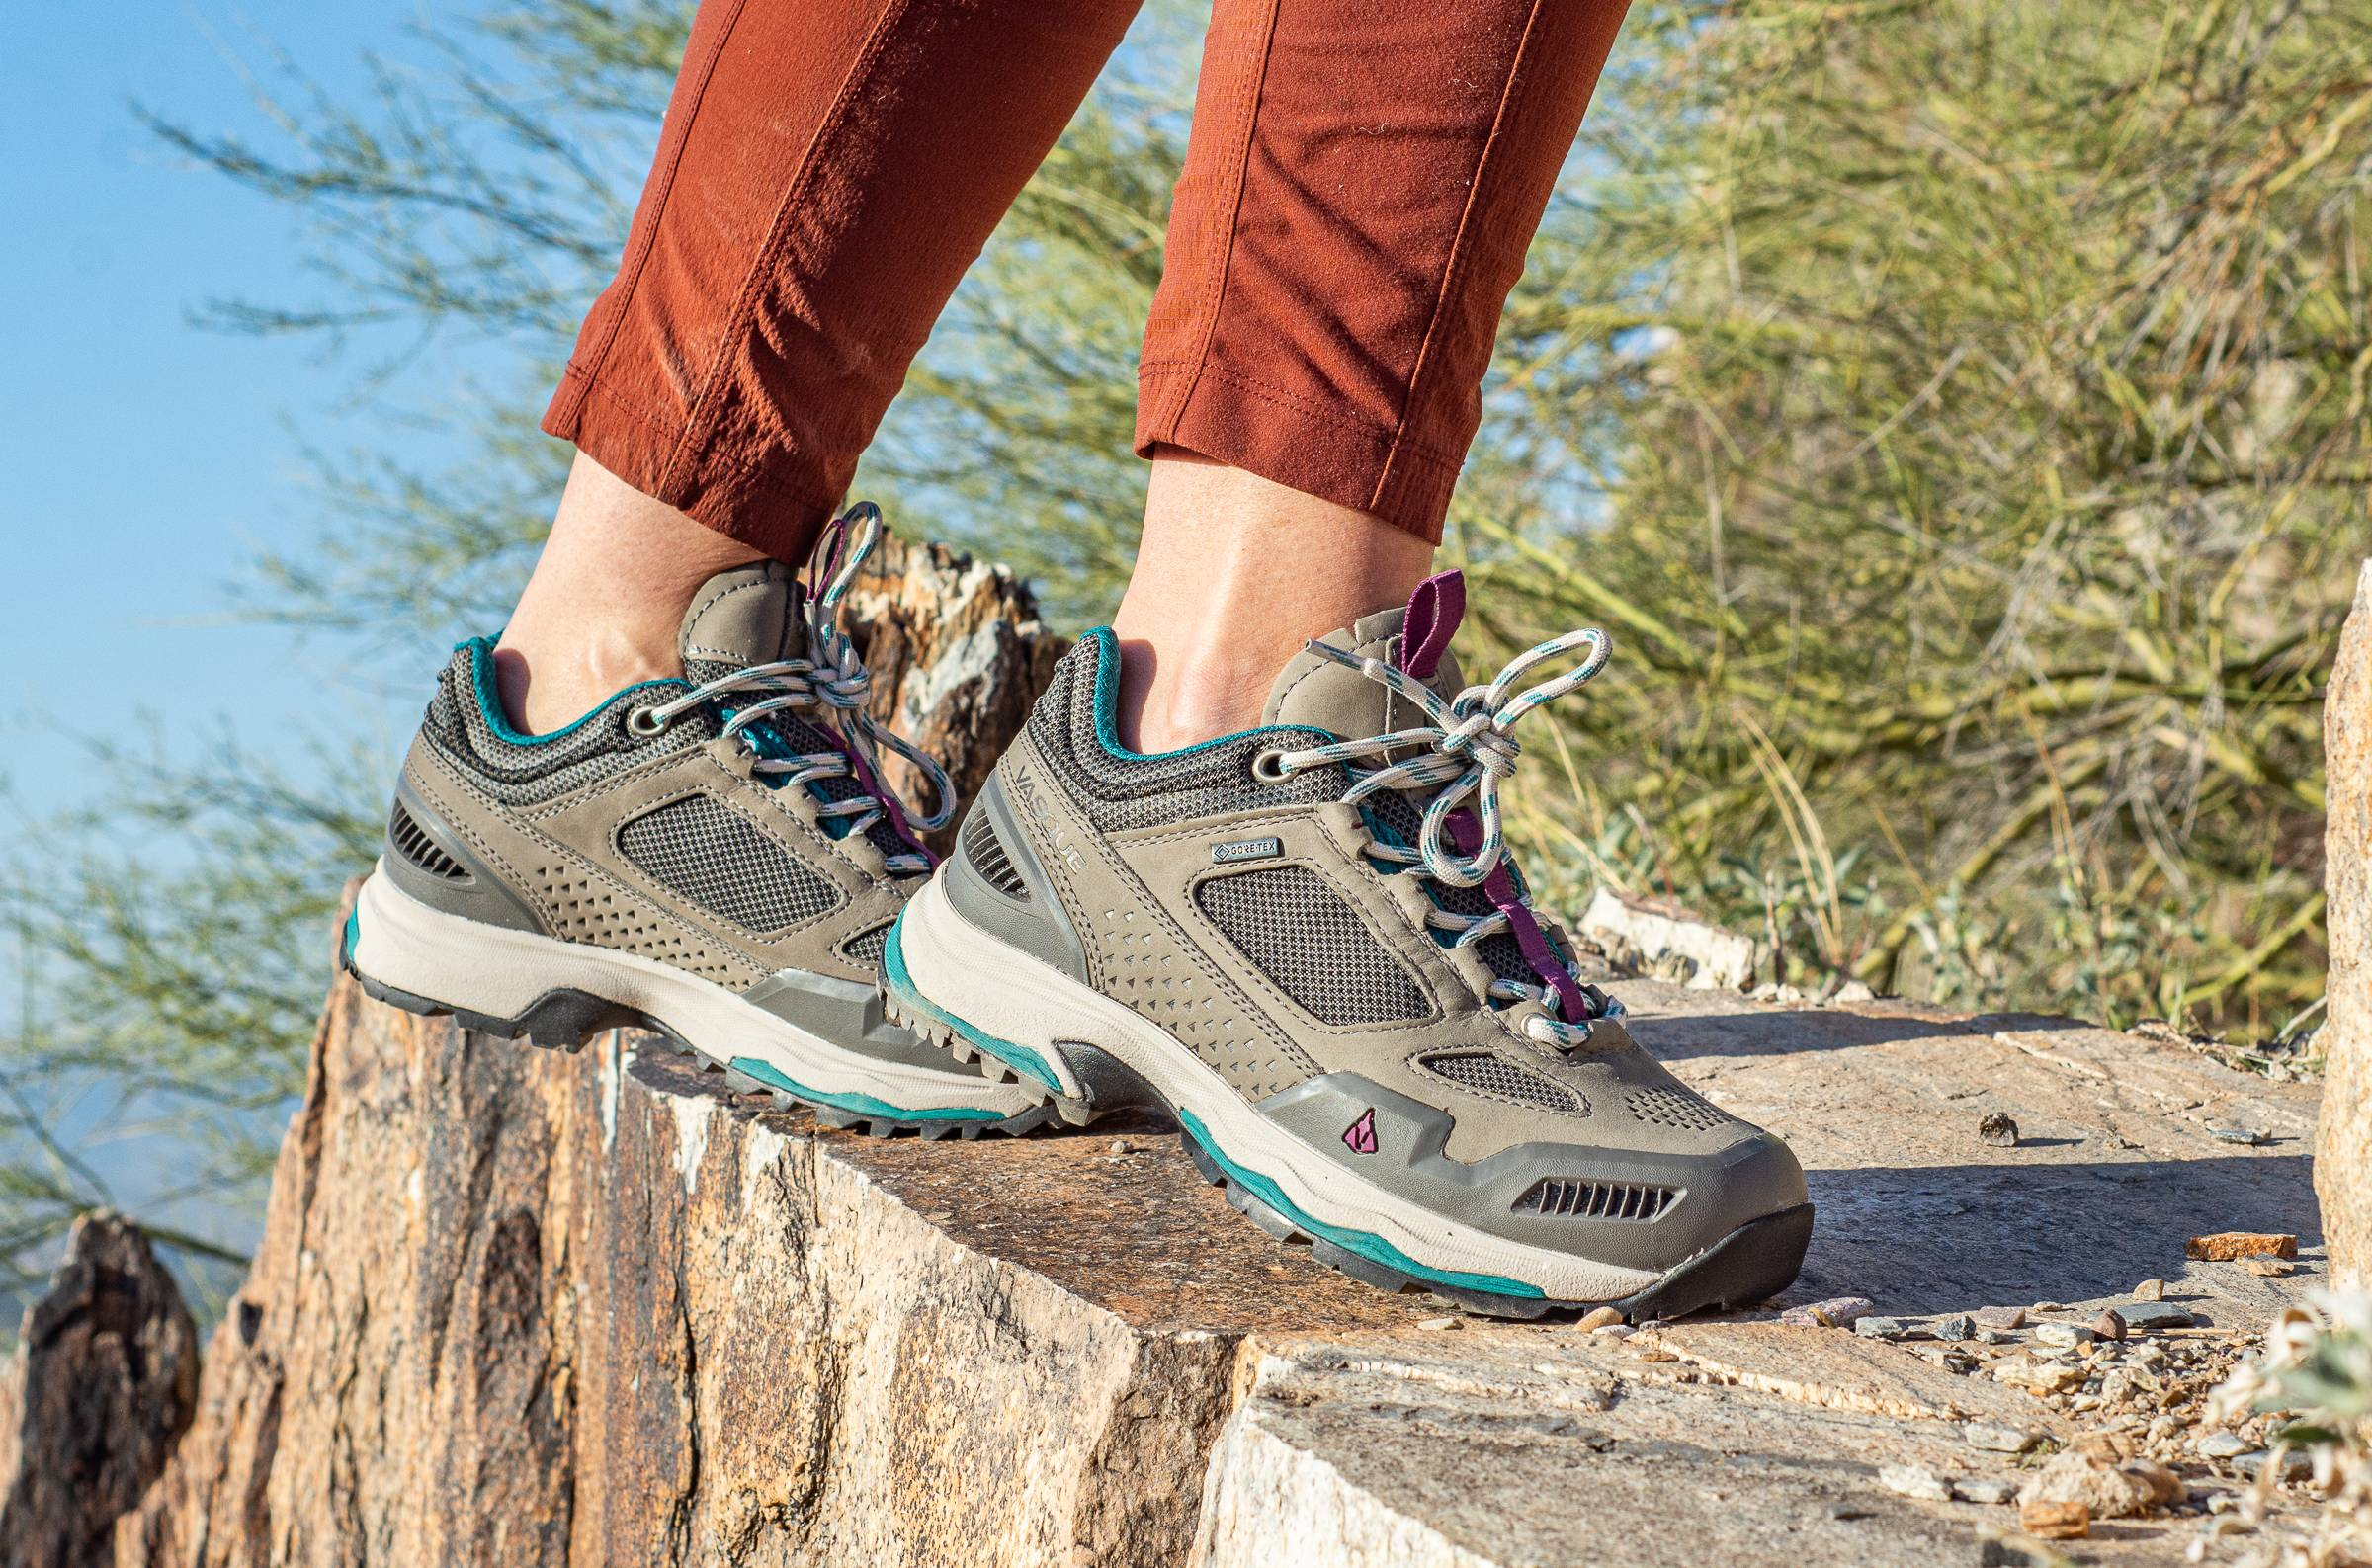 We tested the Best Hiking Shoes of 2021